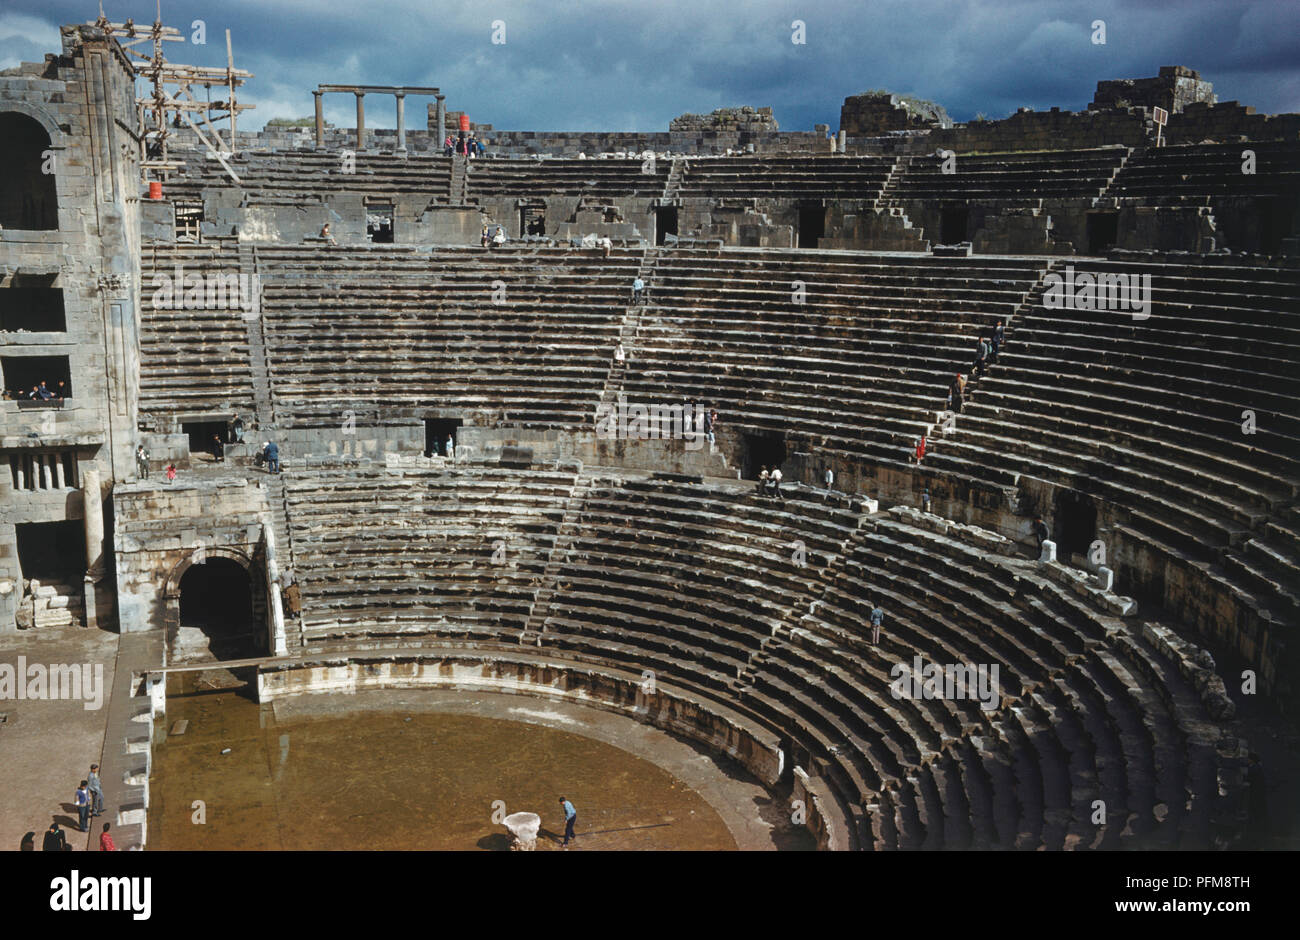 Syria, Bosra, second century Roman amphitheatre, viewed from high arena seating. - Stock Image